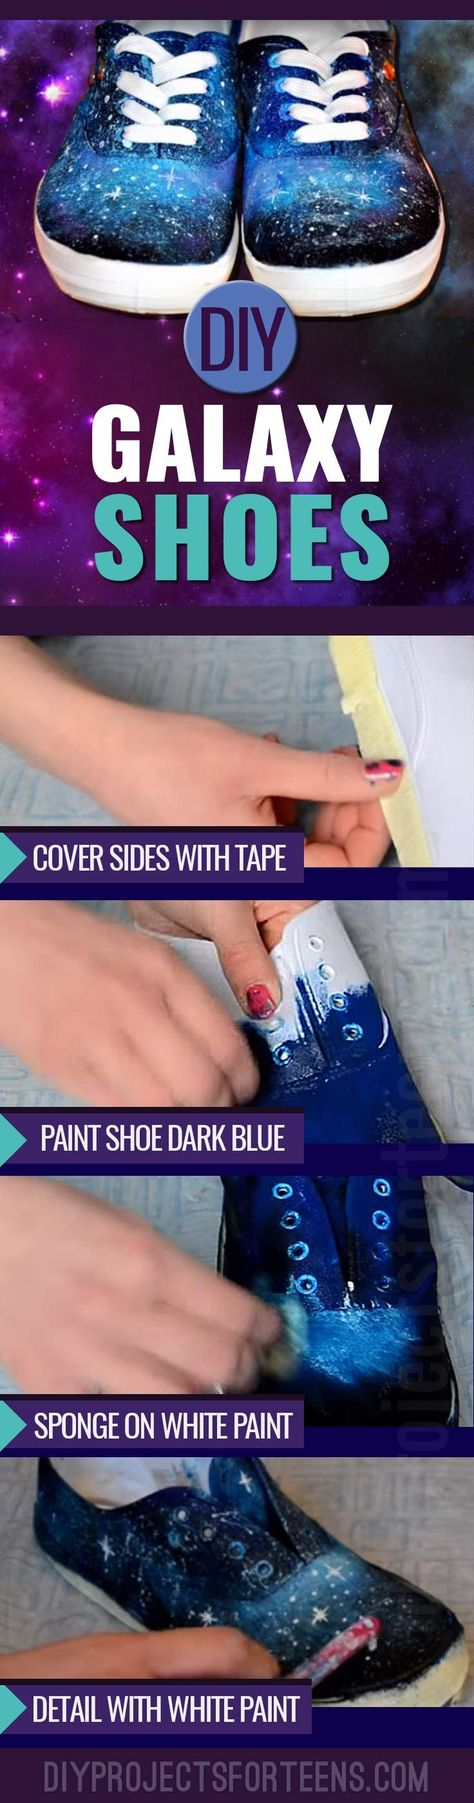 Cool Crafts for Teens to Make - Fun DIY Idea for Galaxy Shoes - Teenagers and Tweens Love this Awesome Craft Project http://diyprojectsforteens.com/diy-galaxy-shoes/